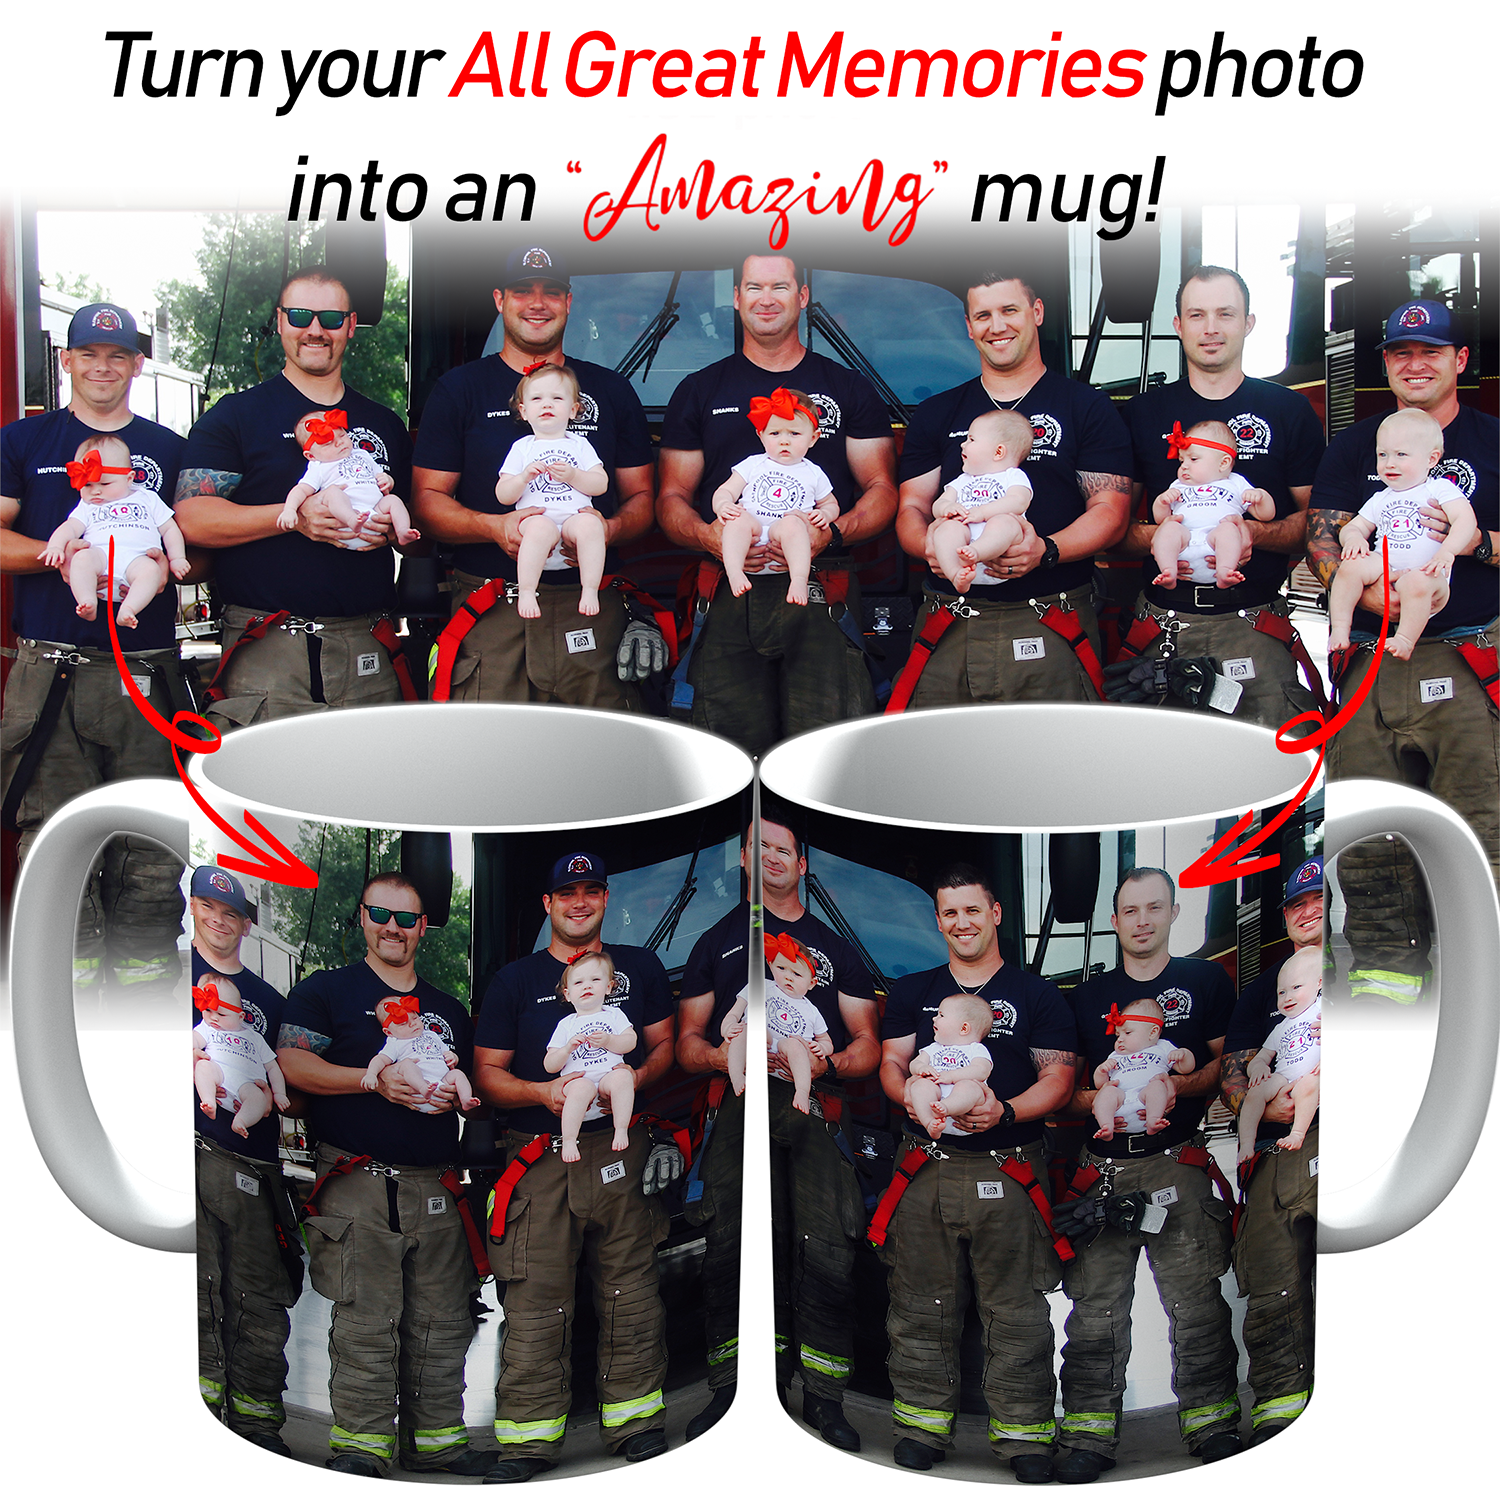 PERSONALIZED MUG - UPLOAD YOUR GREAT MEMORIES WITH BELOVED FIREFIGHTERS